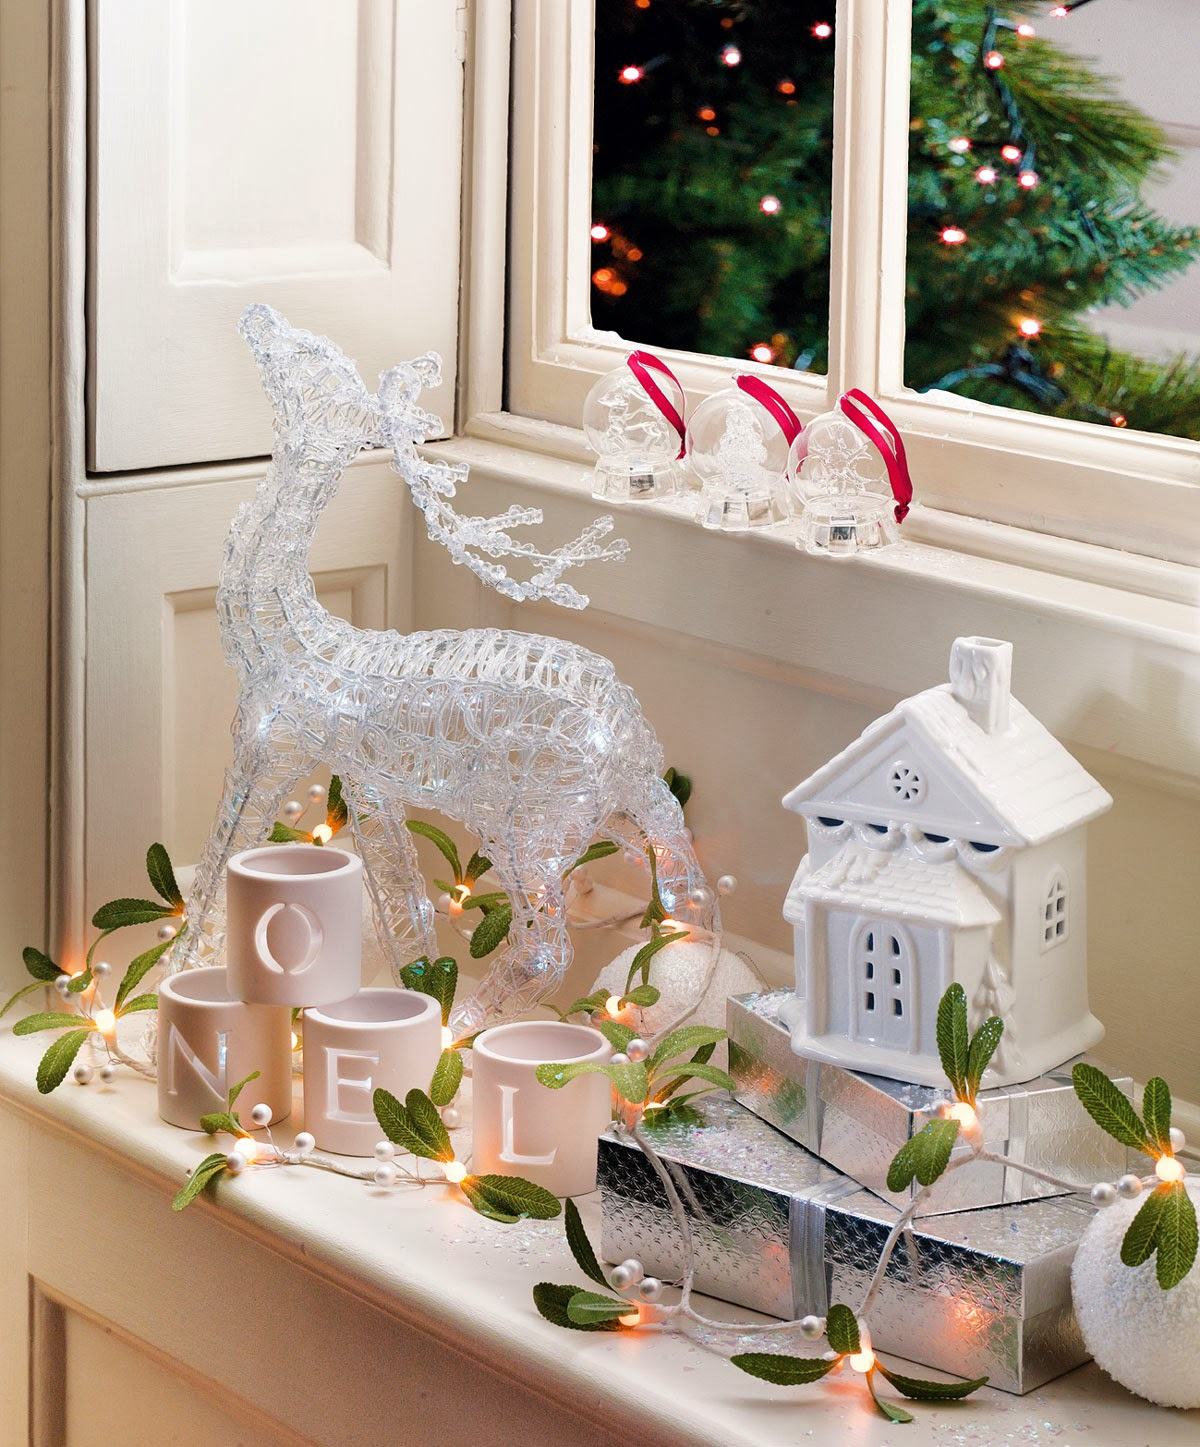 Iluminación para Navidad de Laura Ashley - Ideas